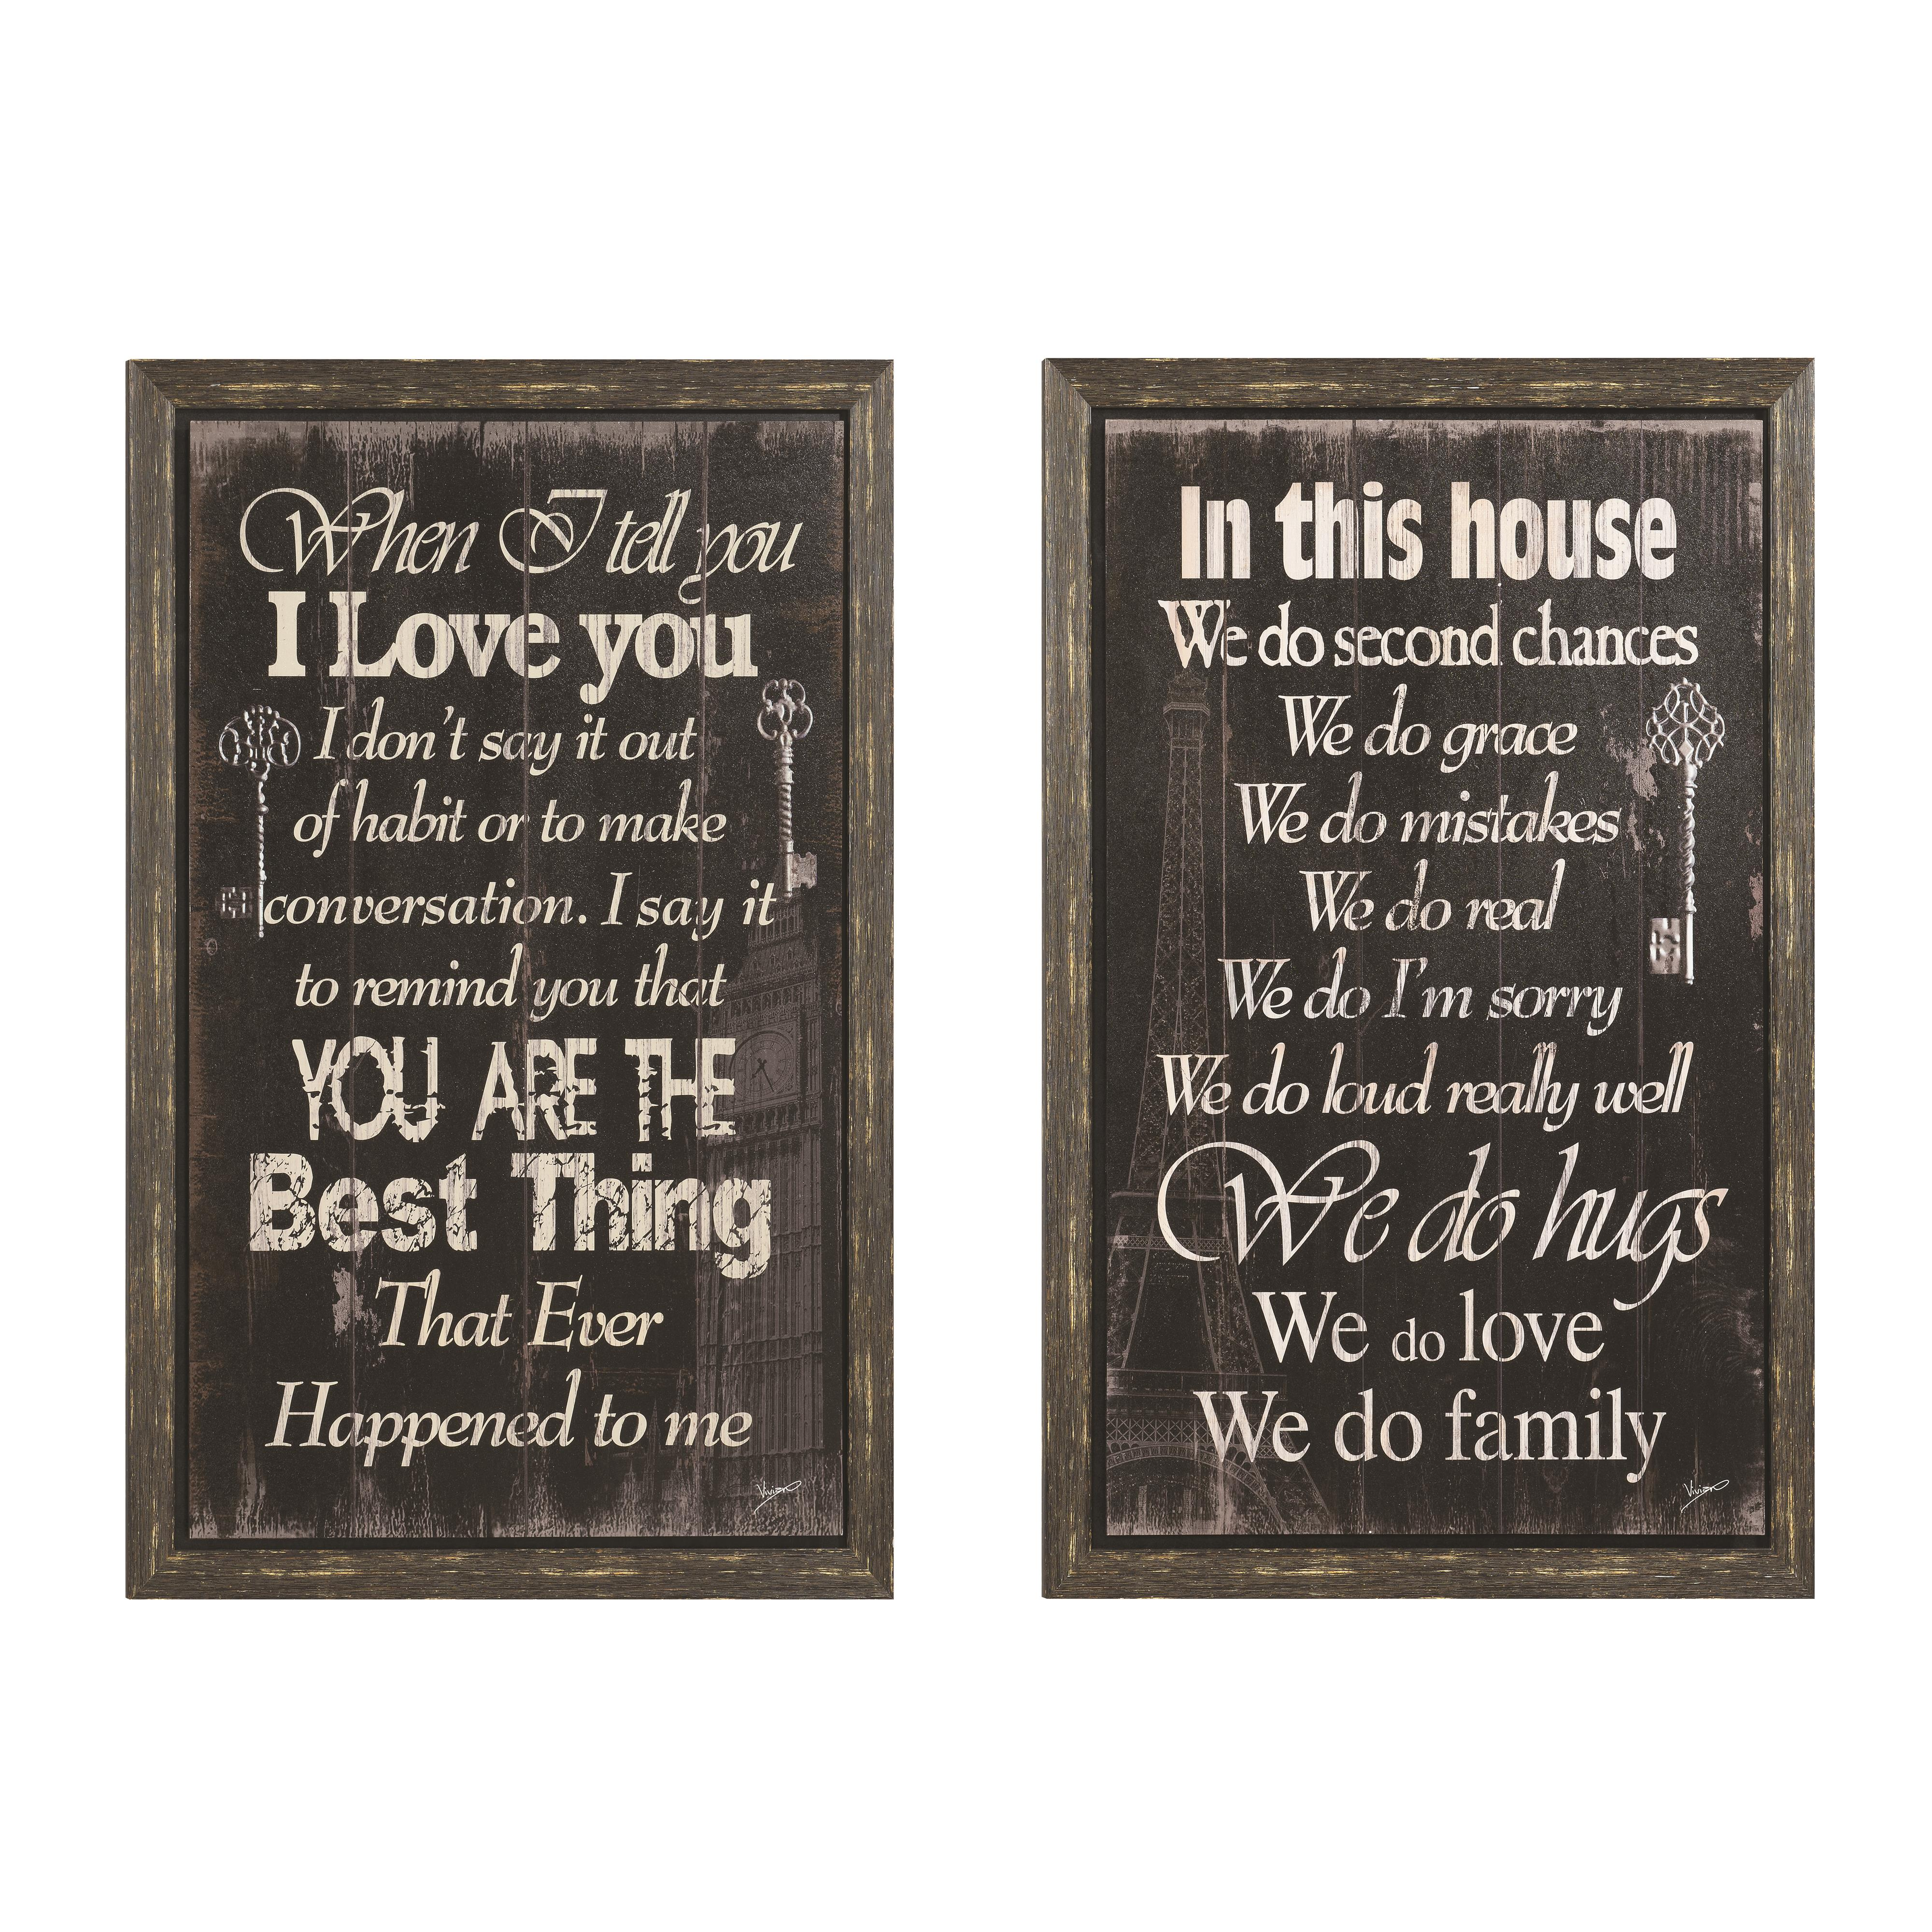 Coaster Wall Art Inspirational Wall Art - Item Number: 960991